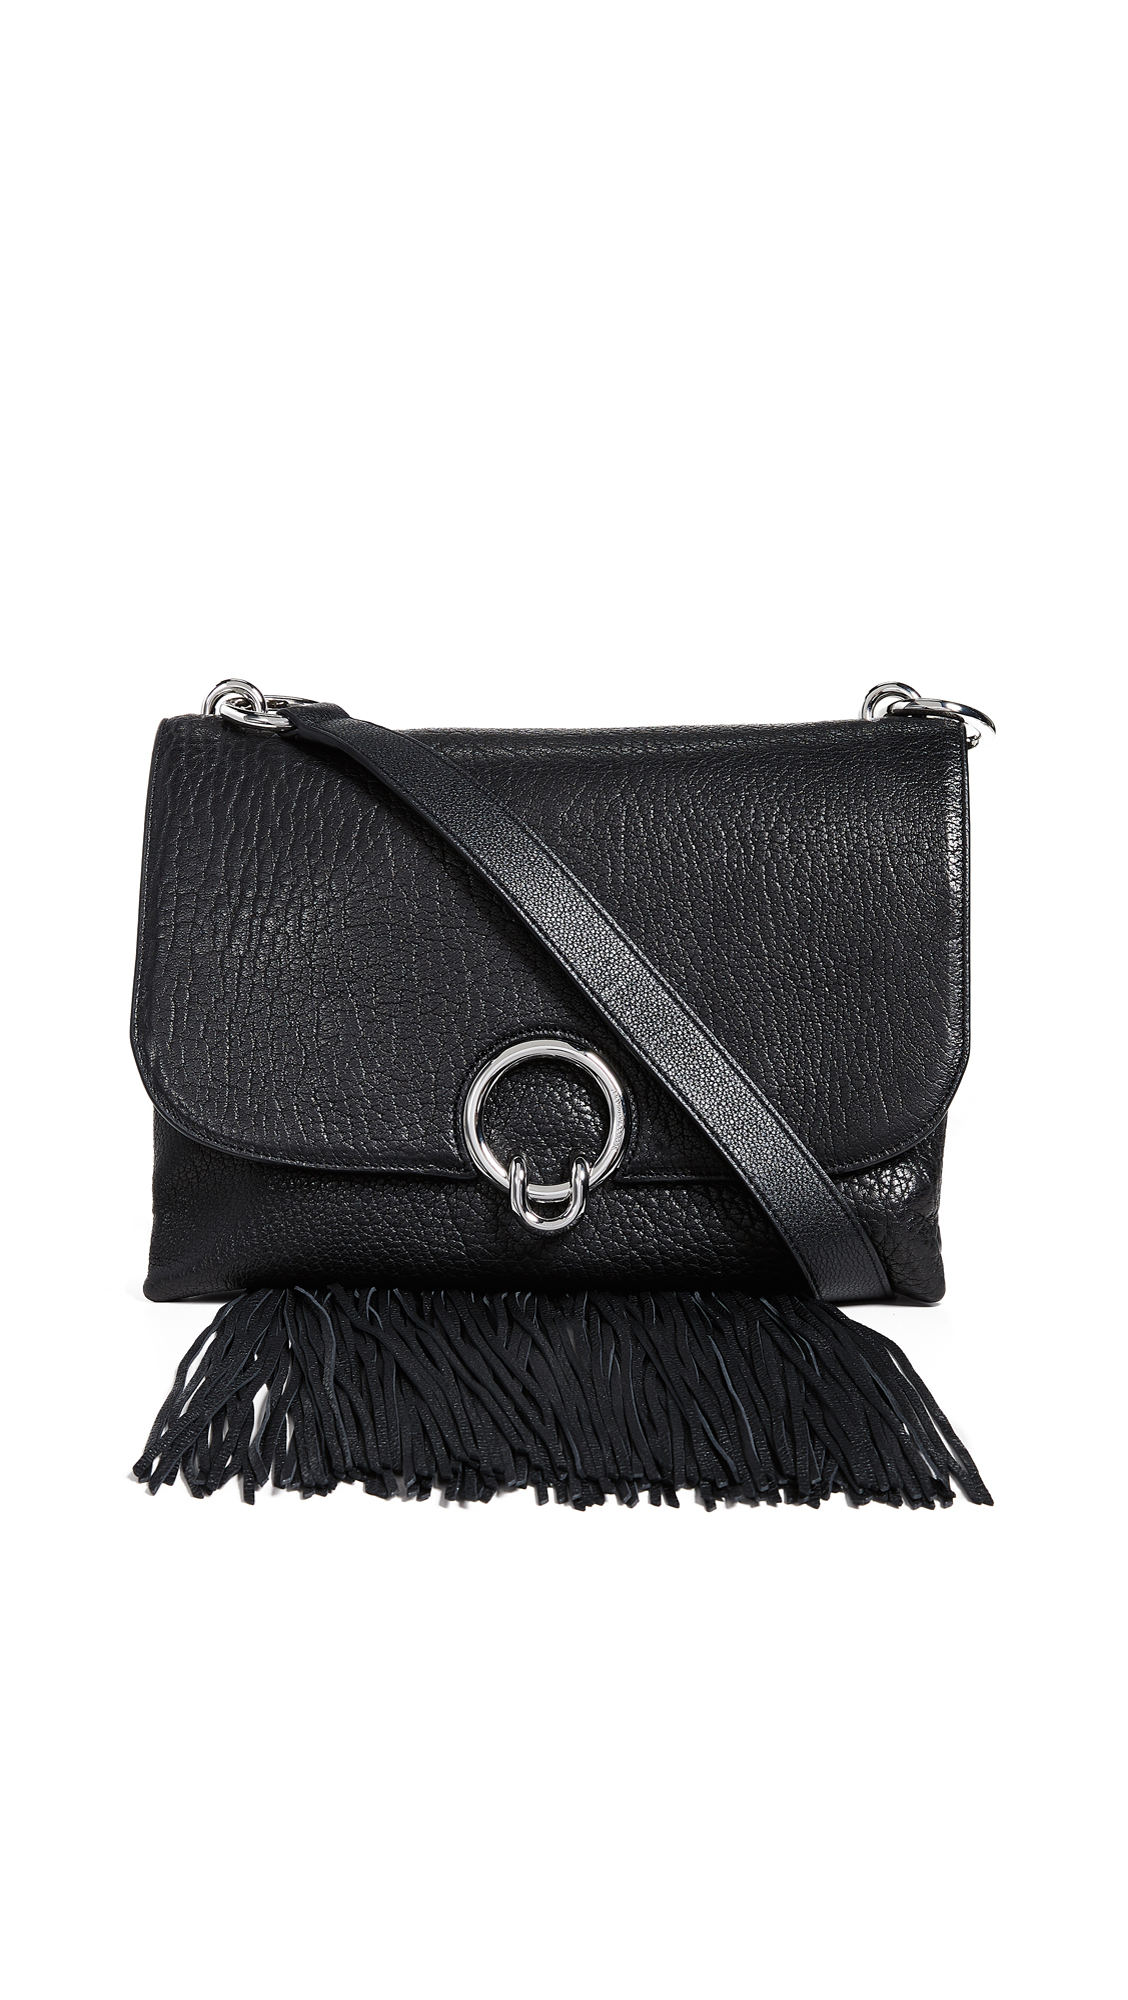 Rebecca Minkoff Isabel Large Shoulder Bag with Fringe